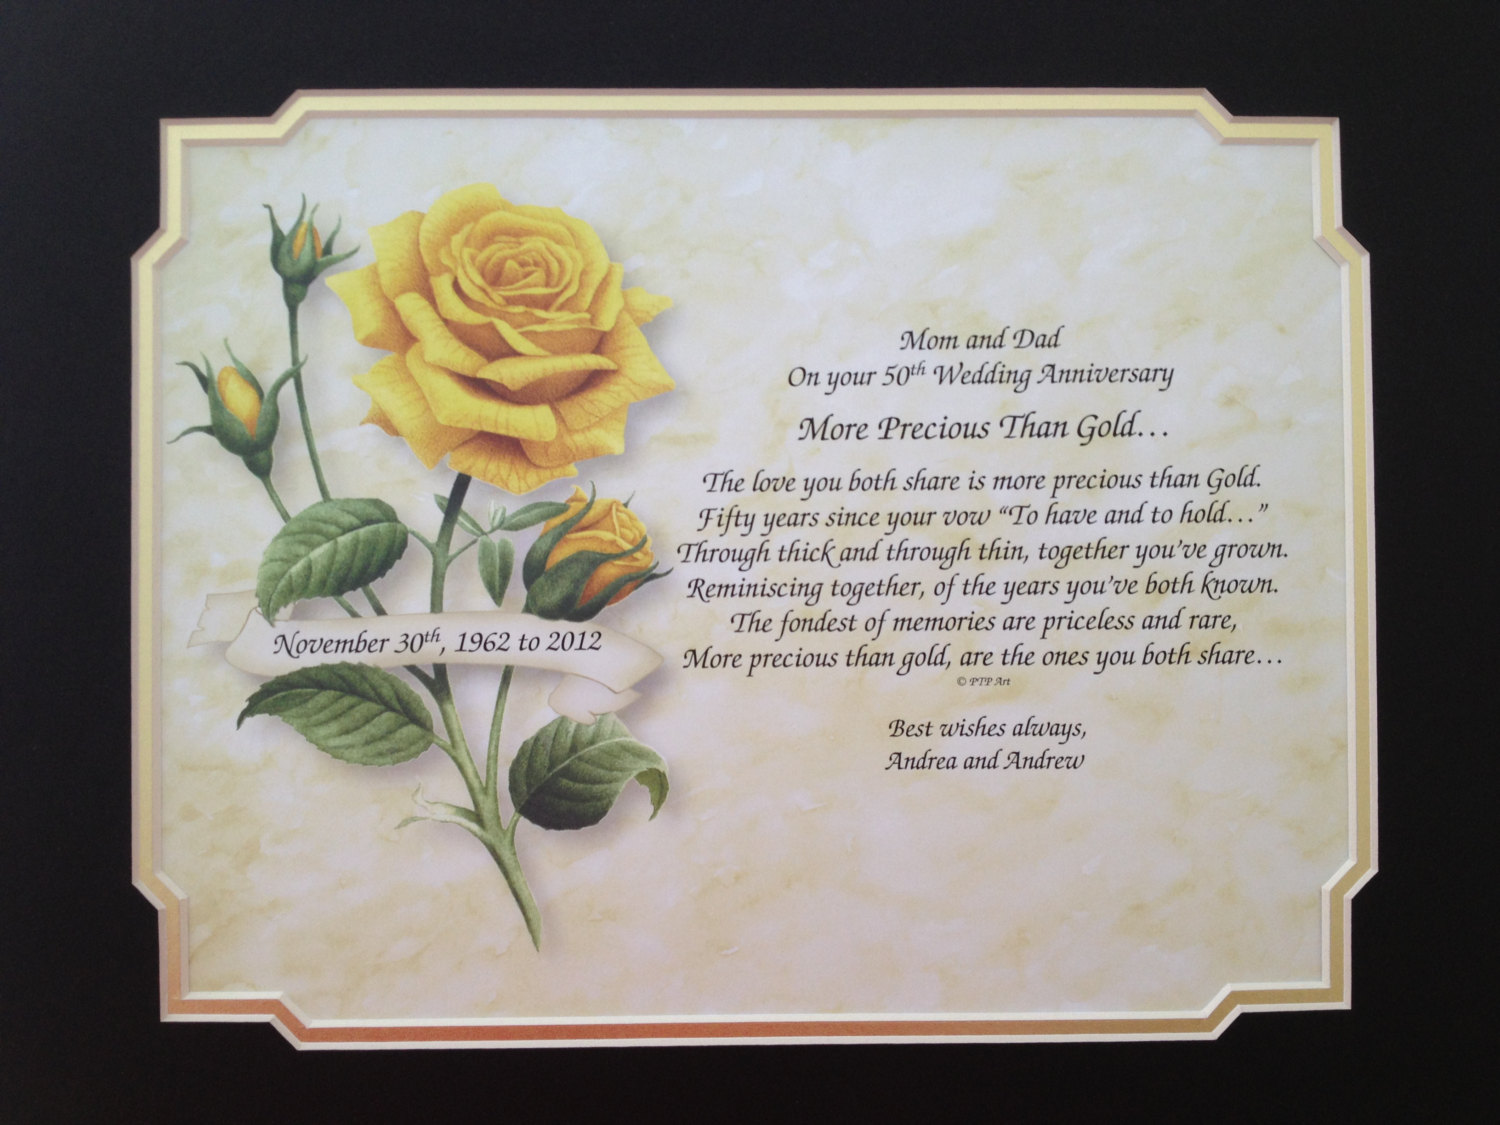 Gift Ideas For 25th Wedding Anniversary Of Pas - Gift Ideas